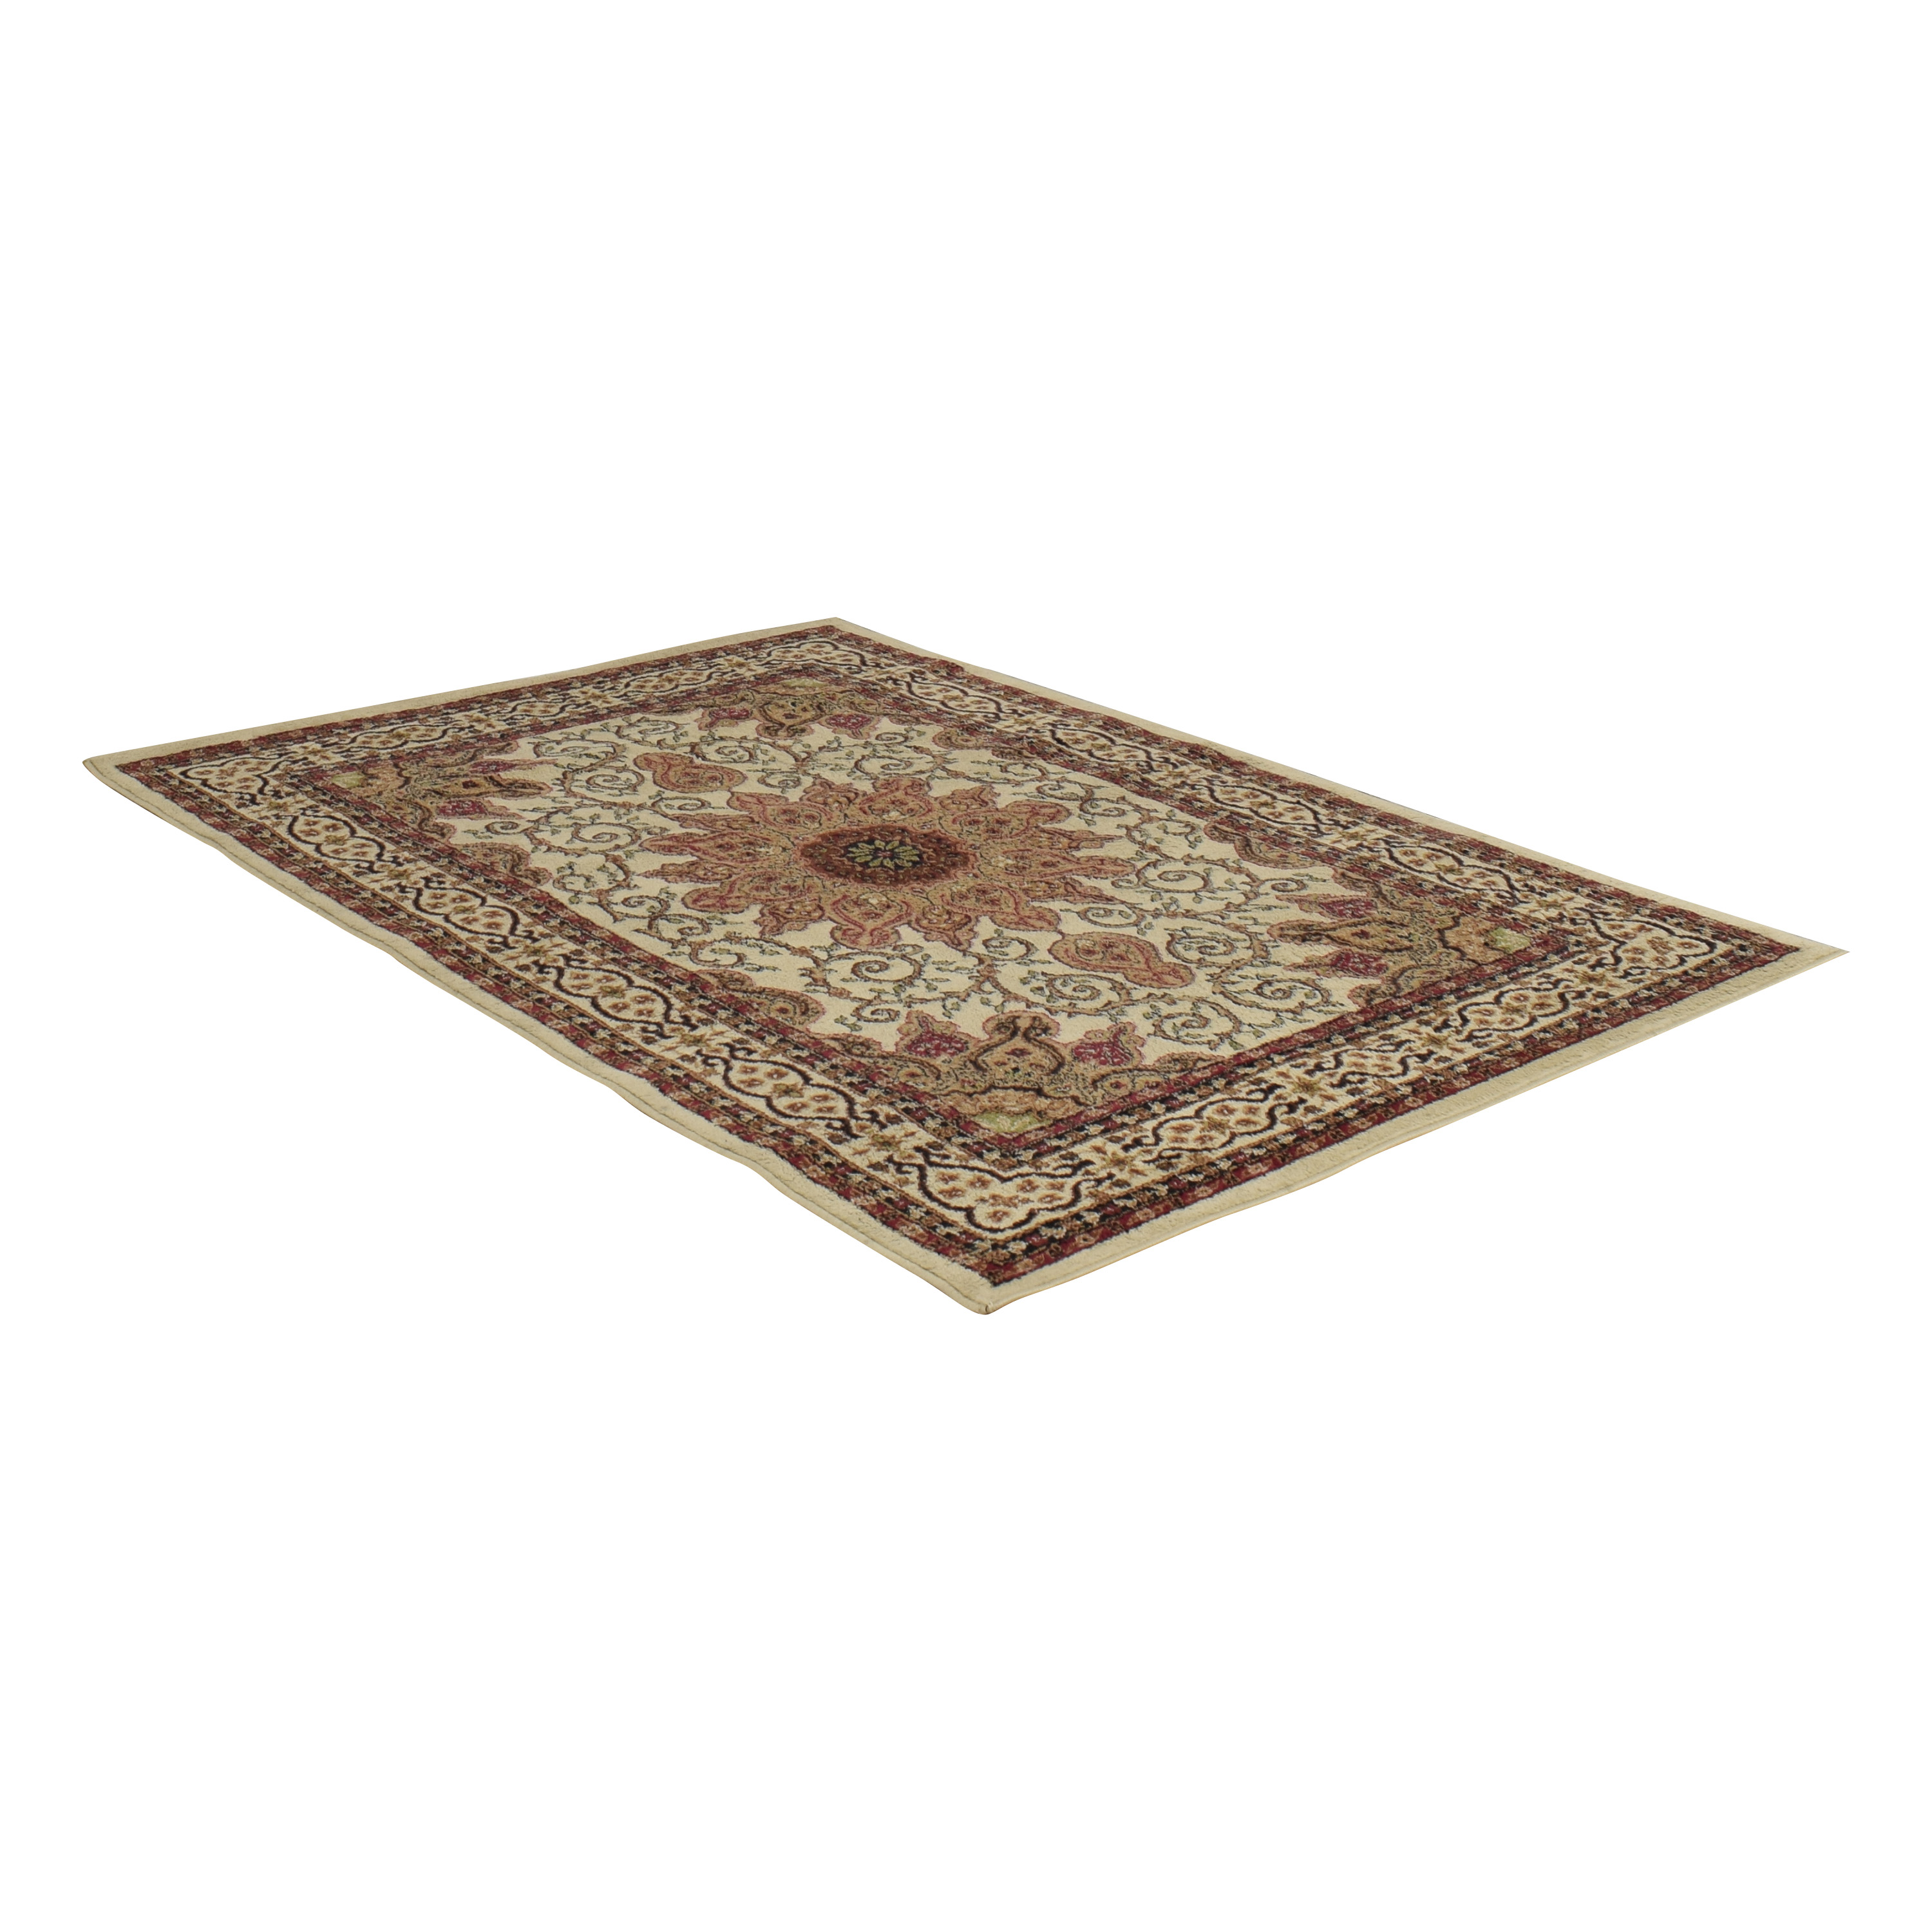 Persian Style Area Rug for sale